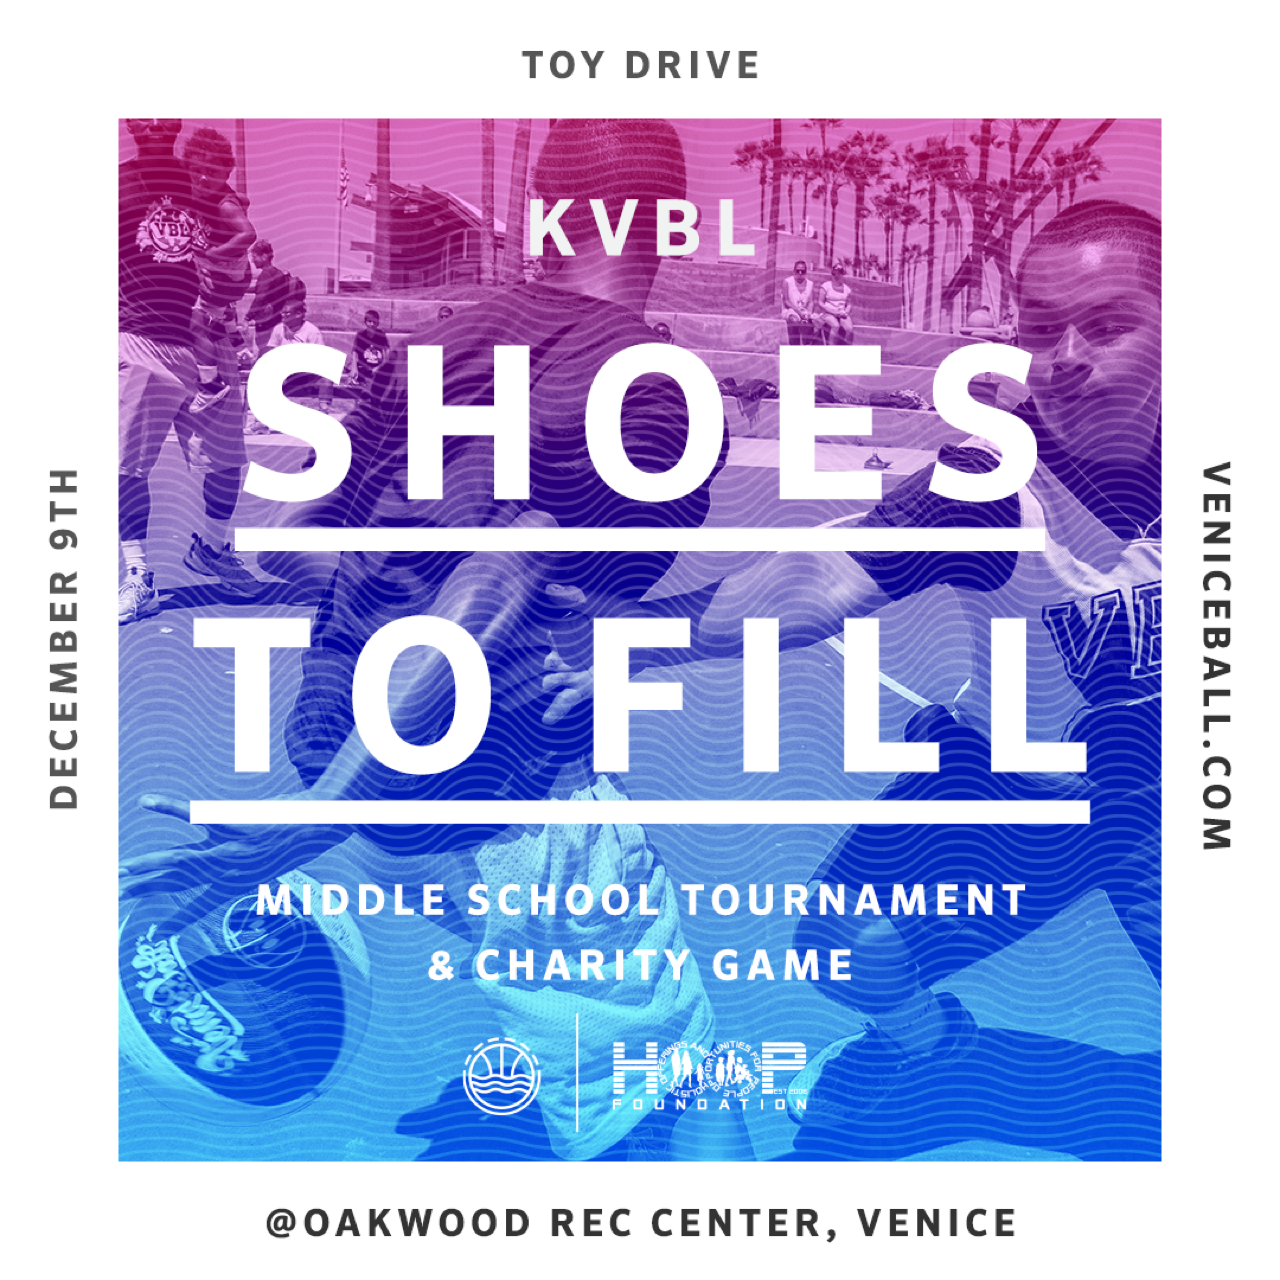 KVBL Shoes to Fill – Toy Drive 2017